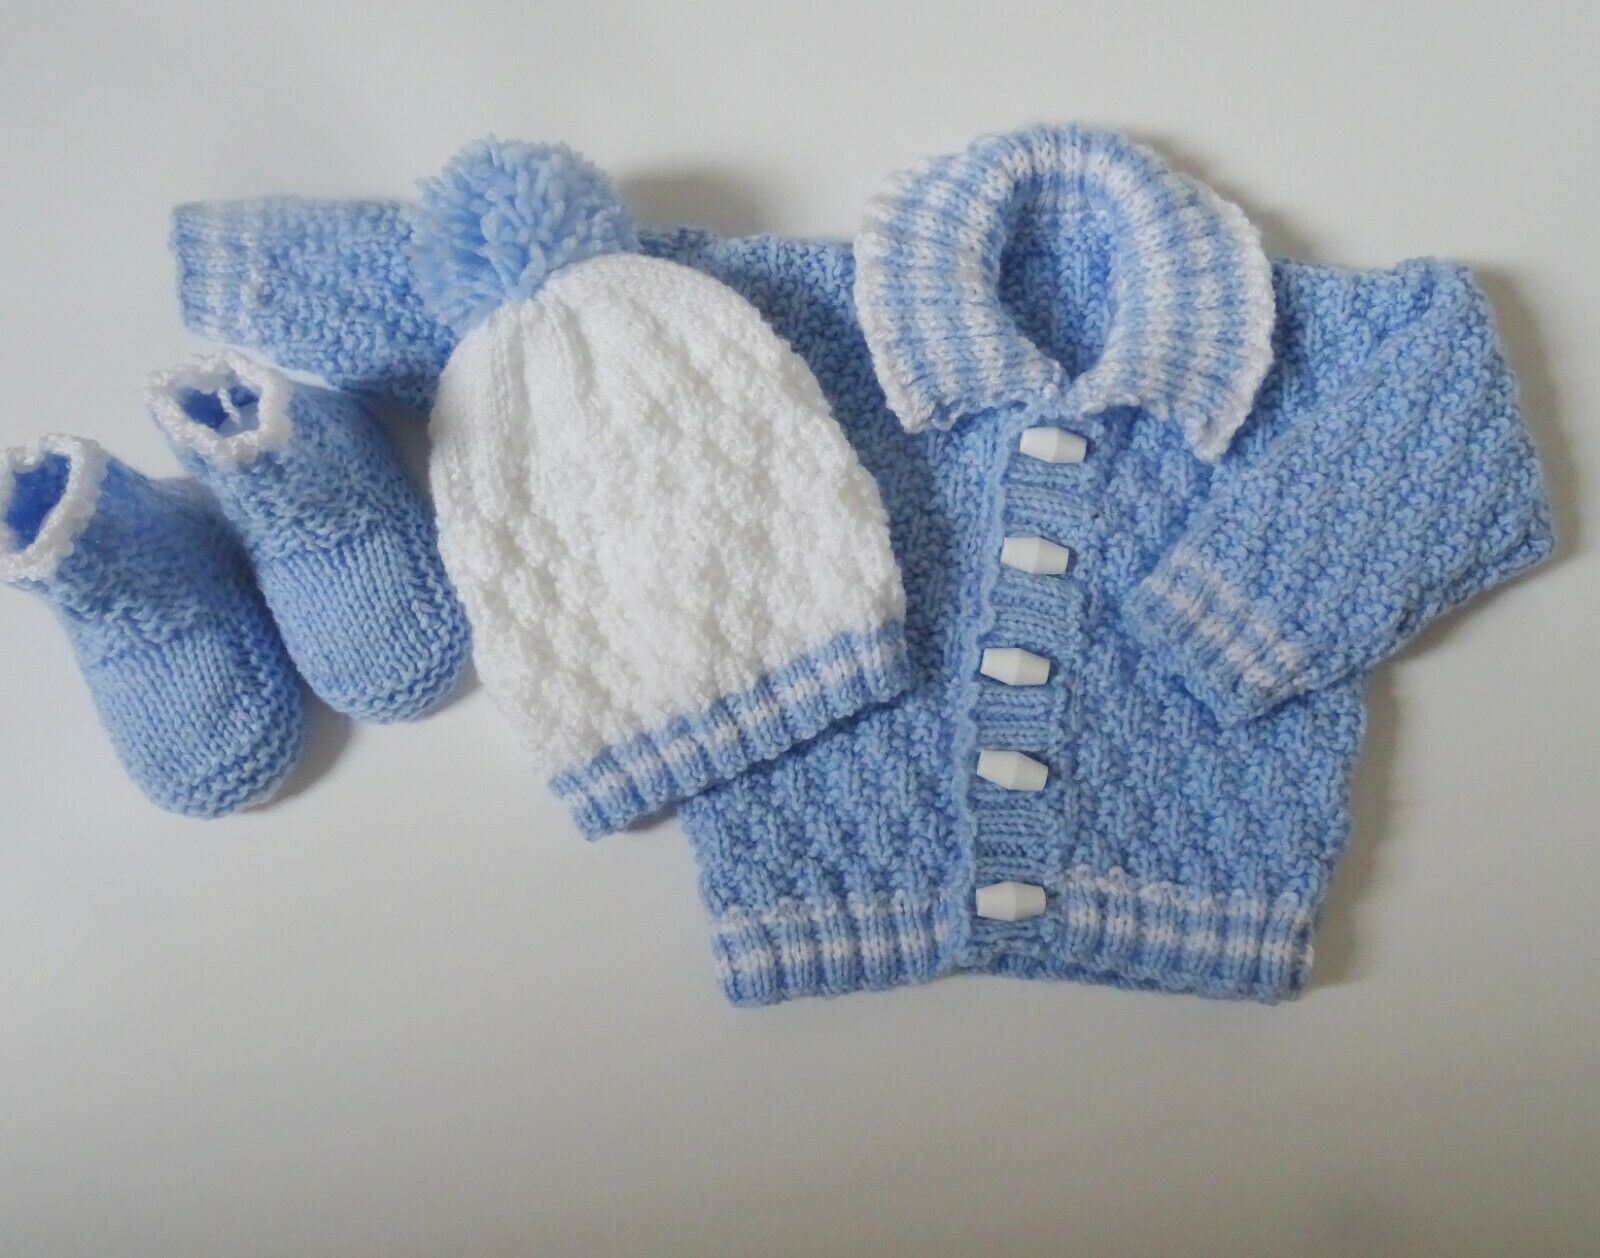 Easy dk knitting pattern instructions to knit baby boys cardigan set